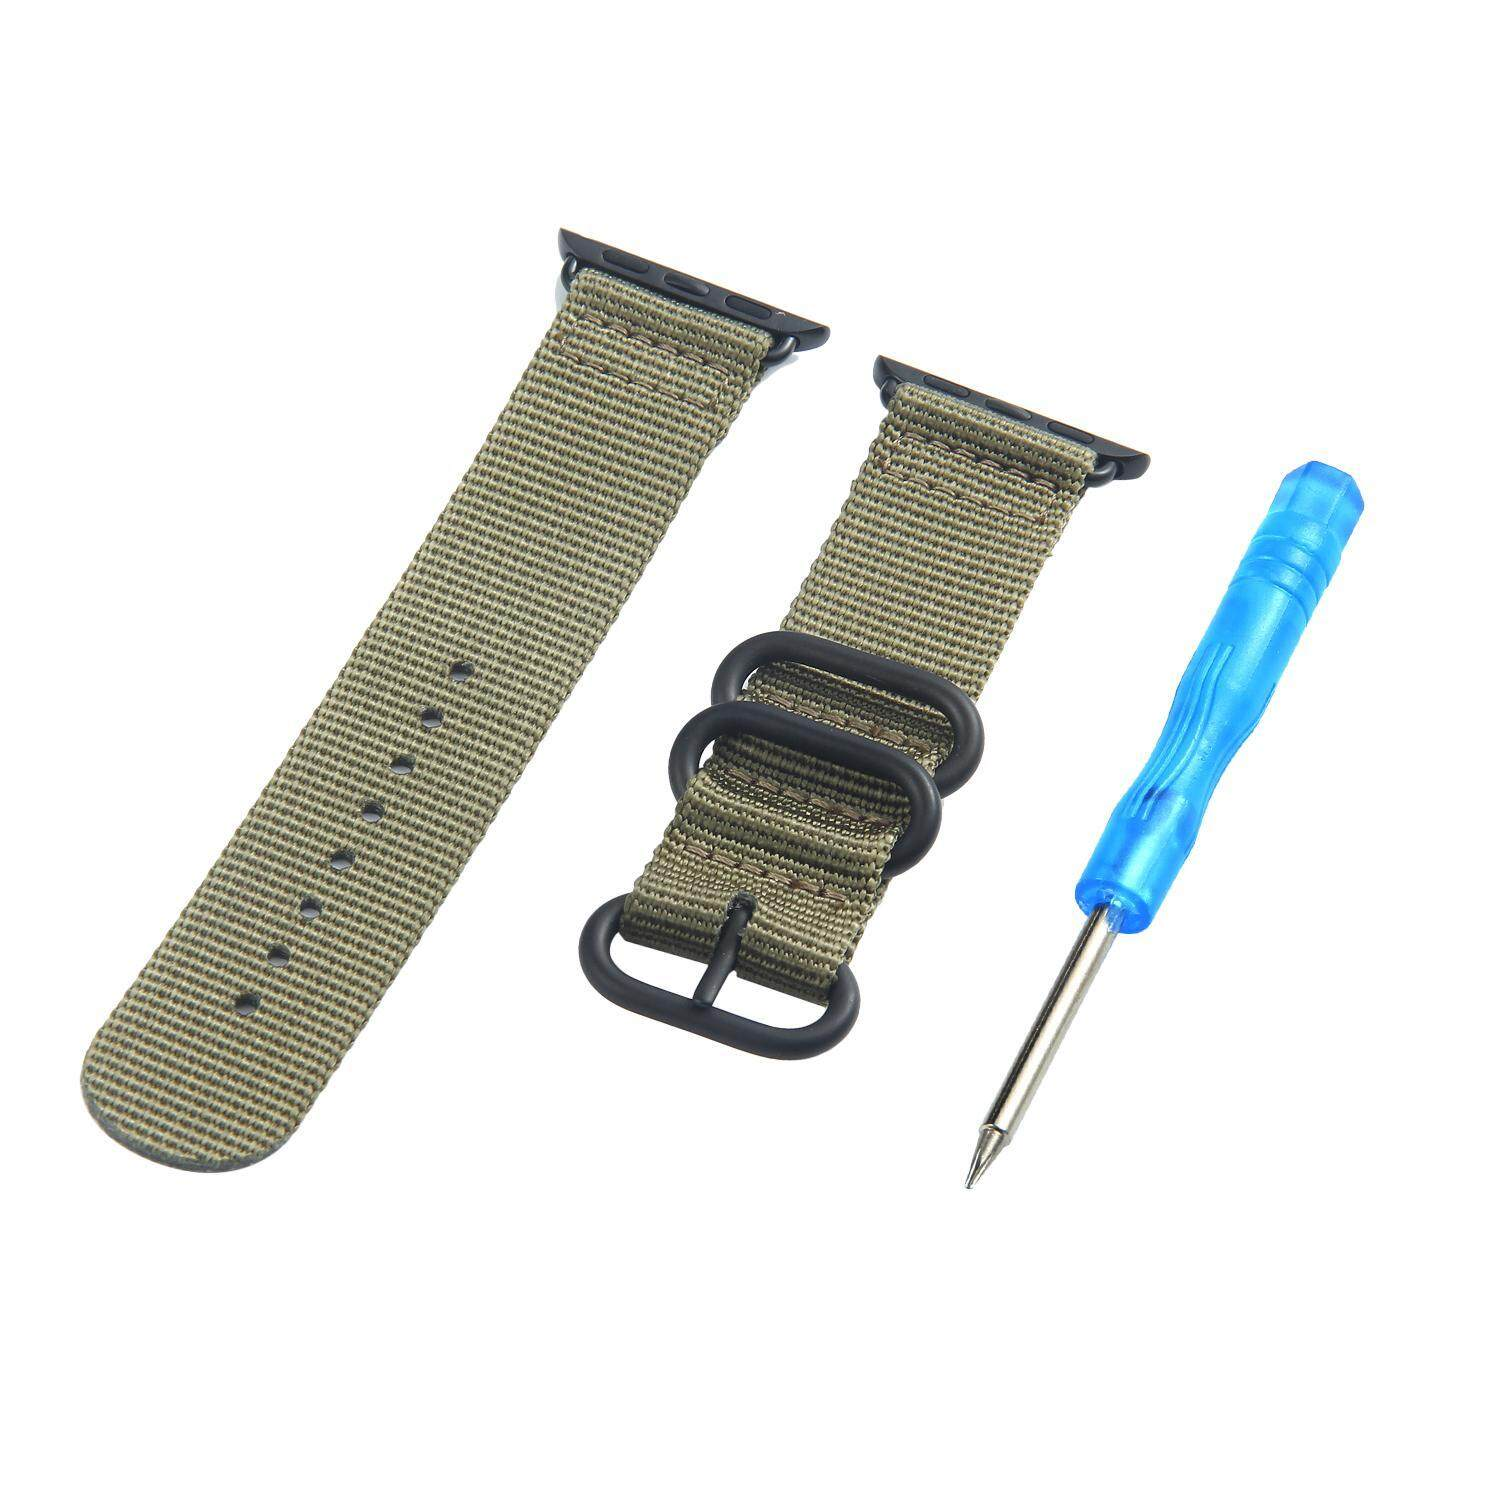 Sale Chang Iwatch Casual Soft Nylon Canvas Fabric Sport Edition Replacement Watch Band Straps For Apple Iwatch 42Mm With Metal Clasp And Connector 42Mm Intl China Cheap